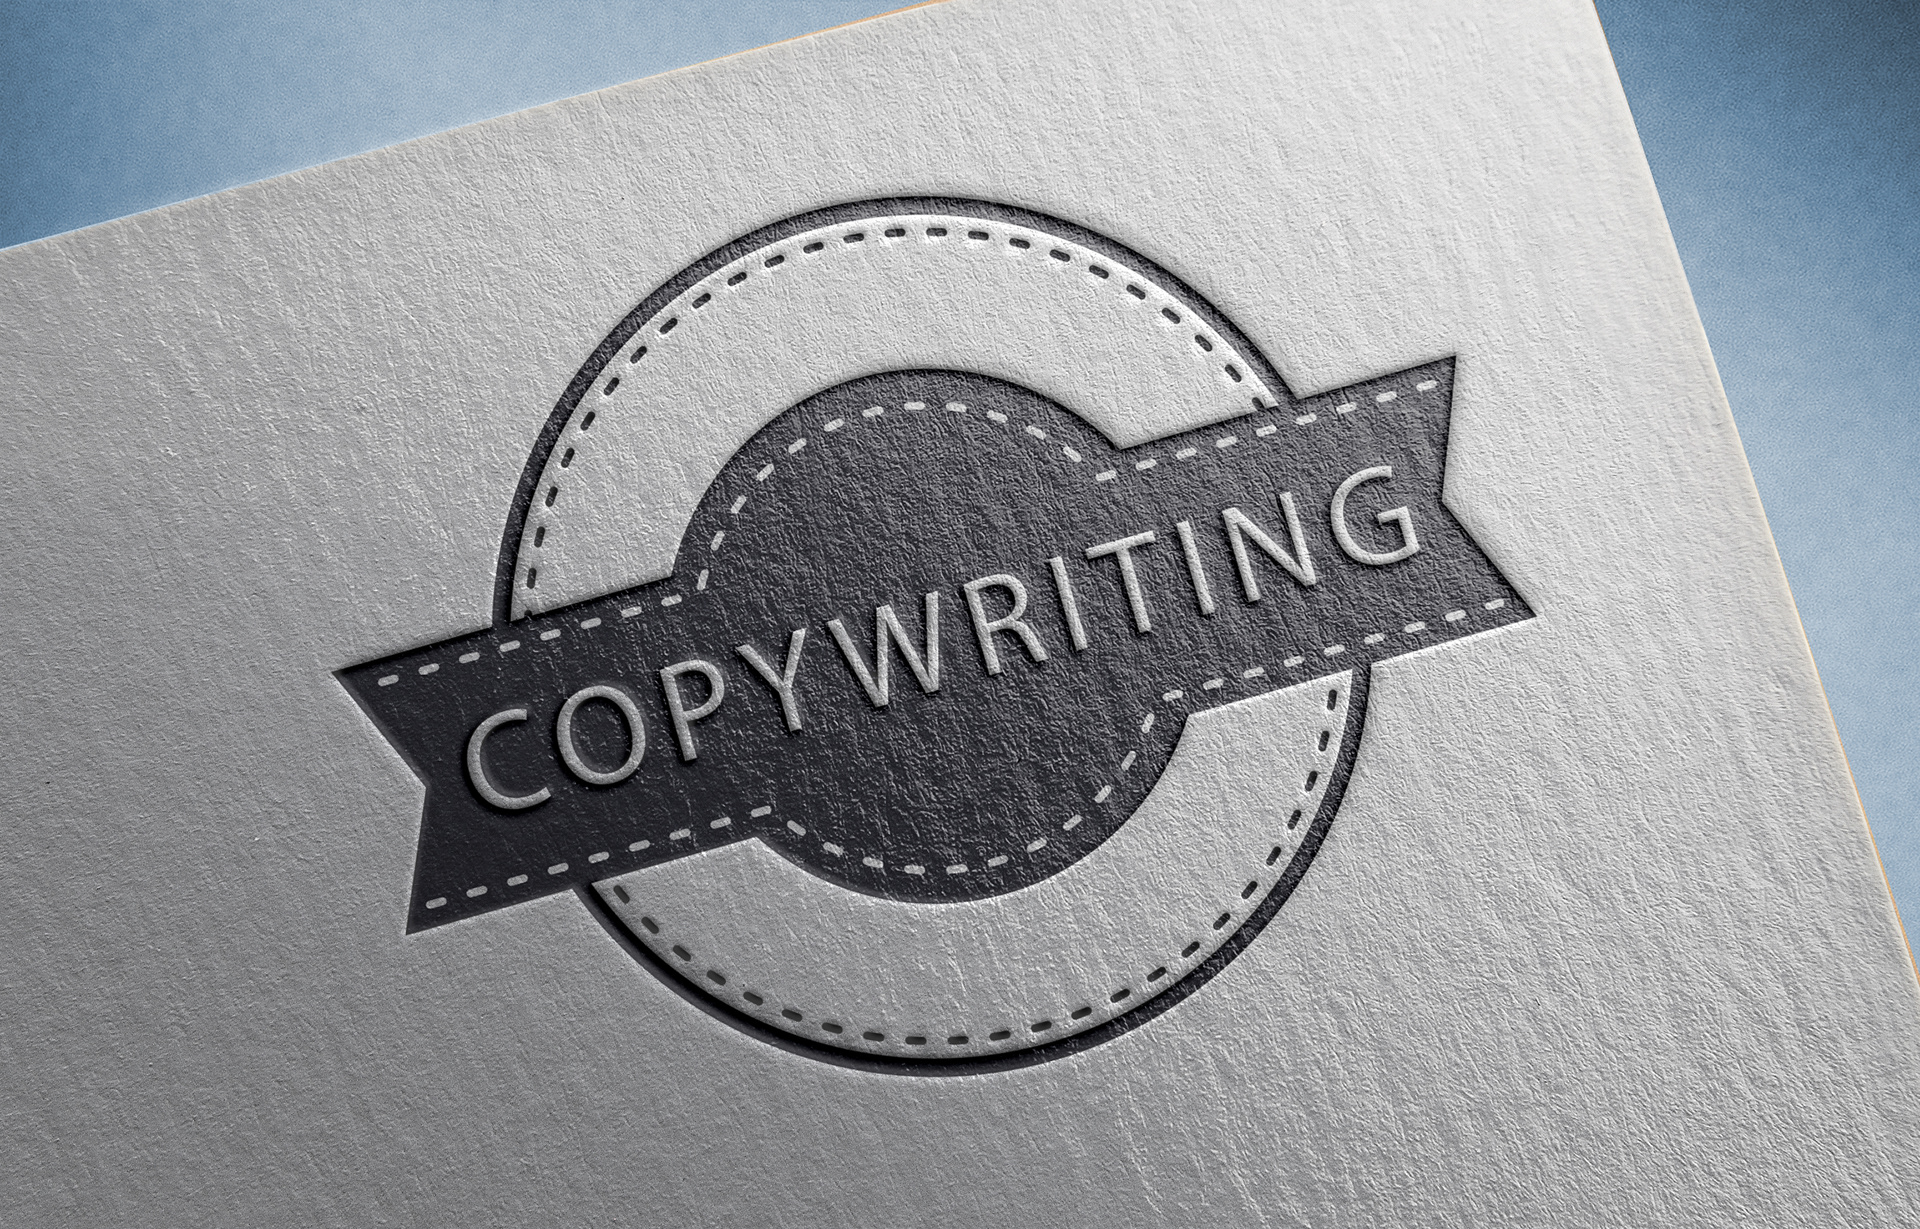 Branding for copy writing course